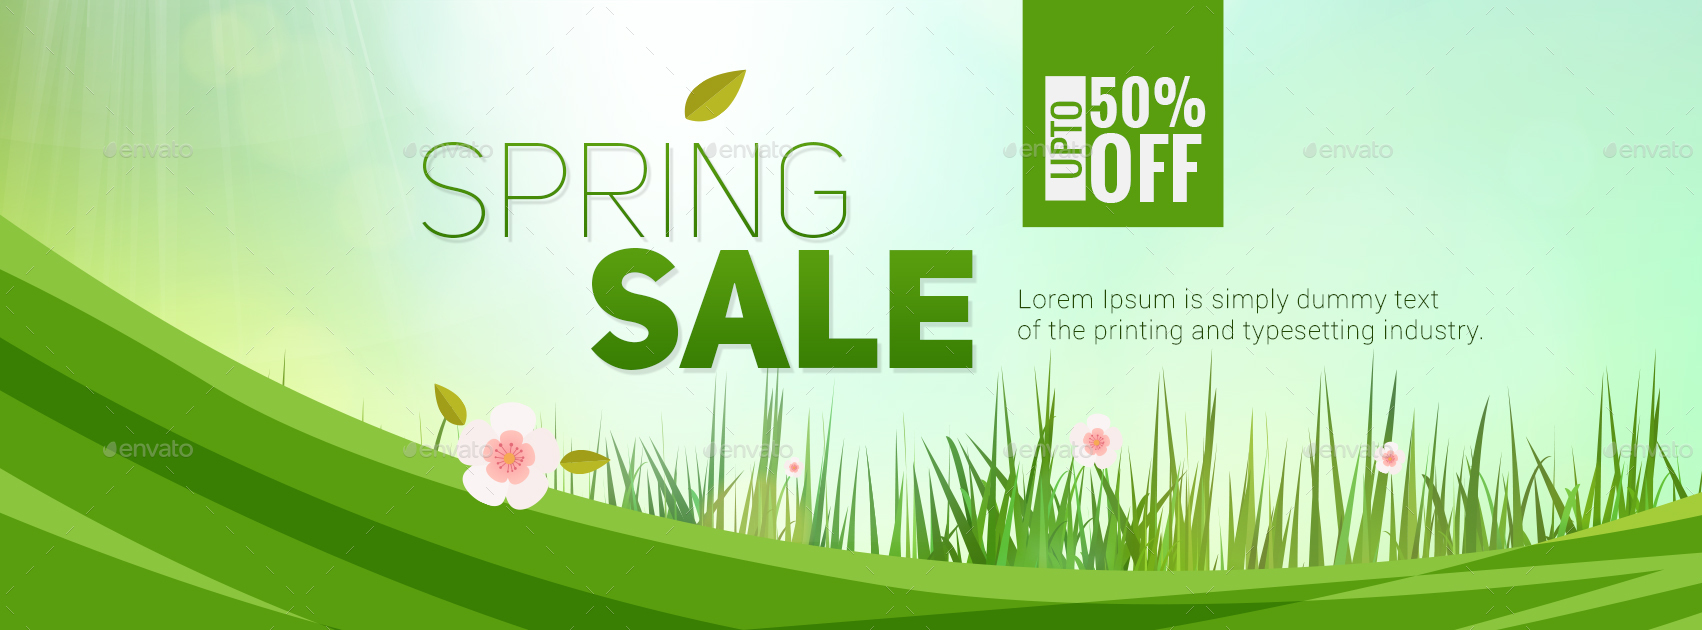 Spring Sale Facebook Covers 3 Designs By Hyov Graphicriver